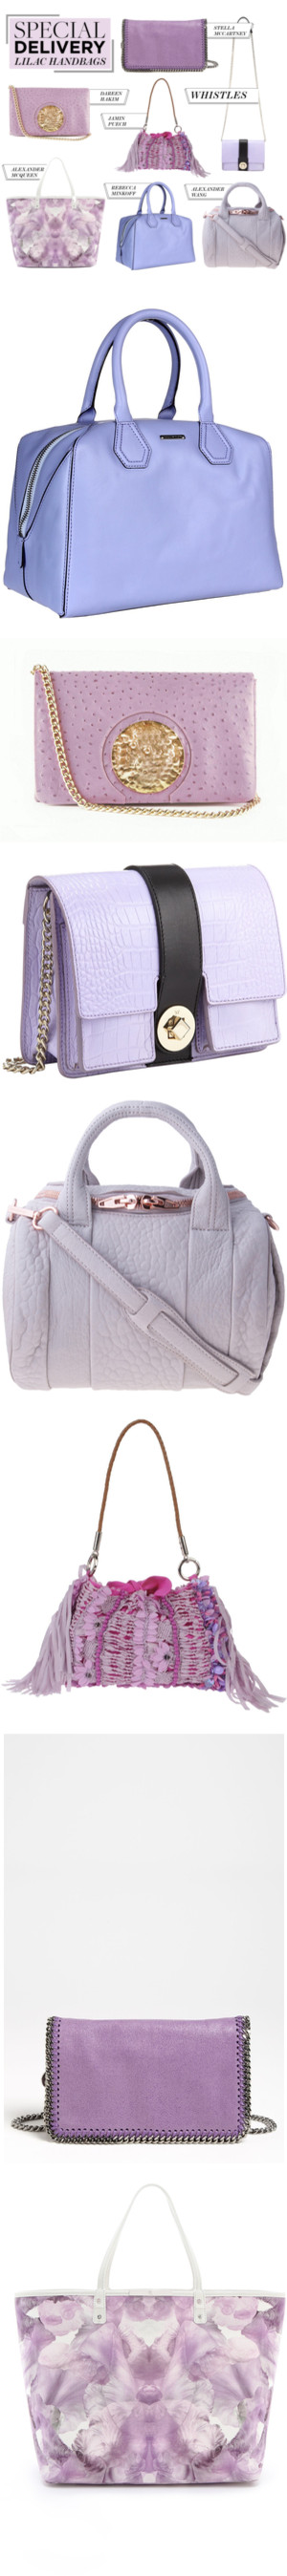 """Special Delivery: 7 Lovely Lilac Handbags"" by polyvore-editorial ❤ liked on Polyvore"